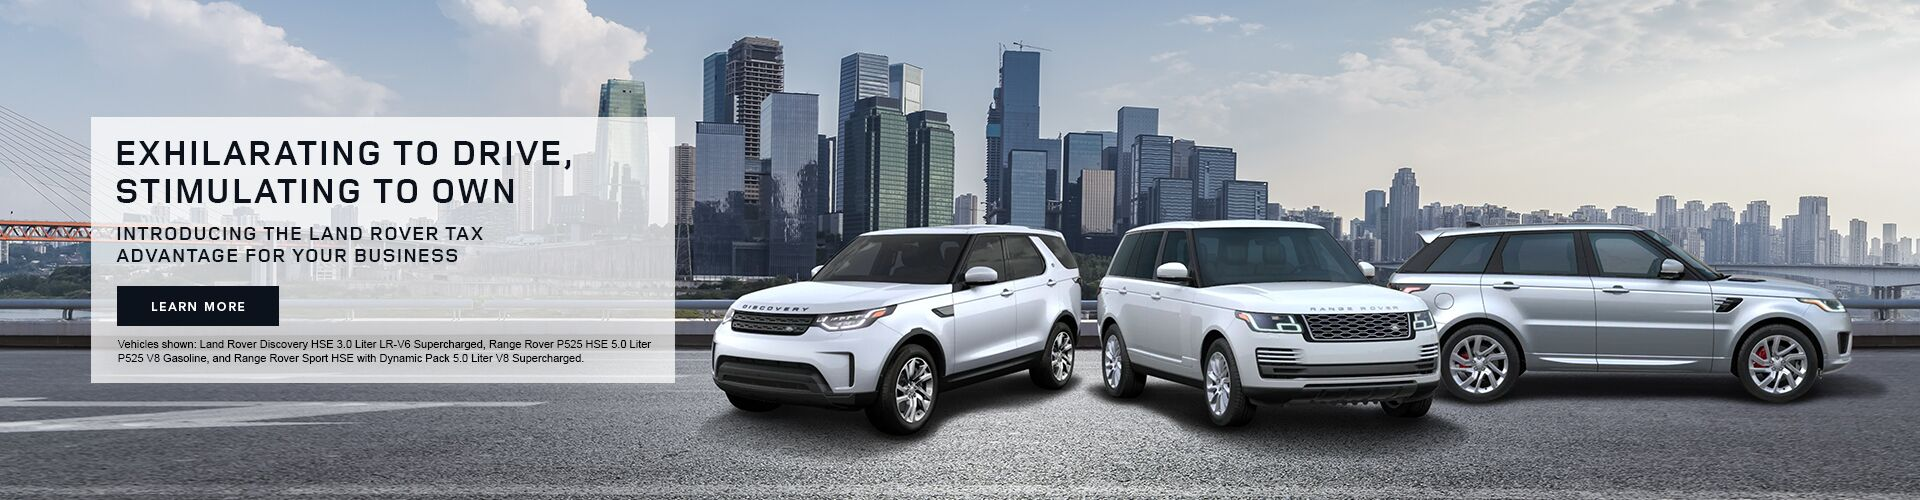 Cars For Sale Sacramento >> Land Rover Dealership Sacramento Ca Used Cars Land Rover